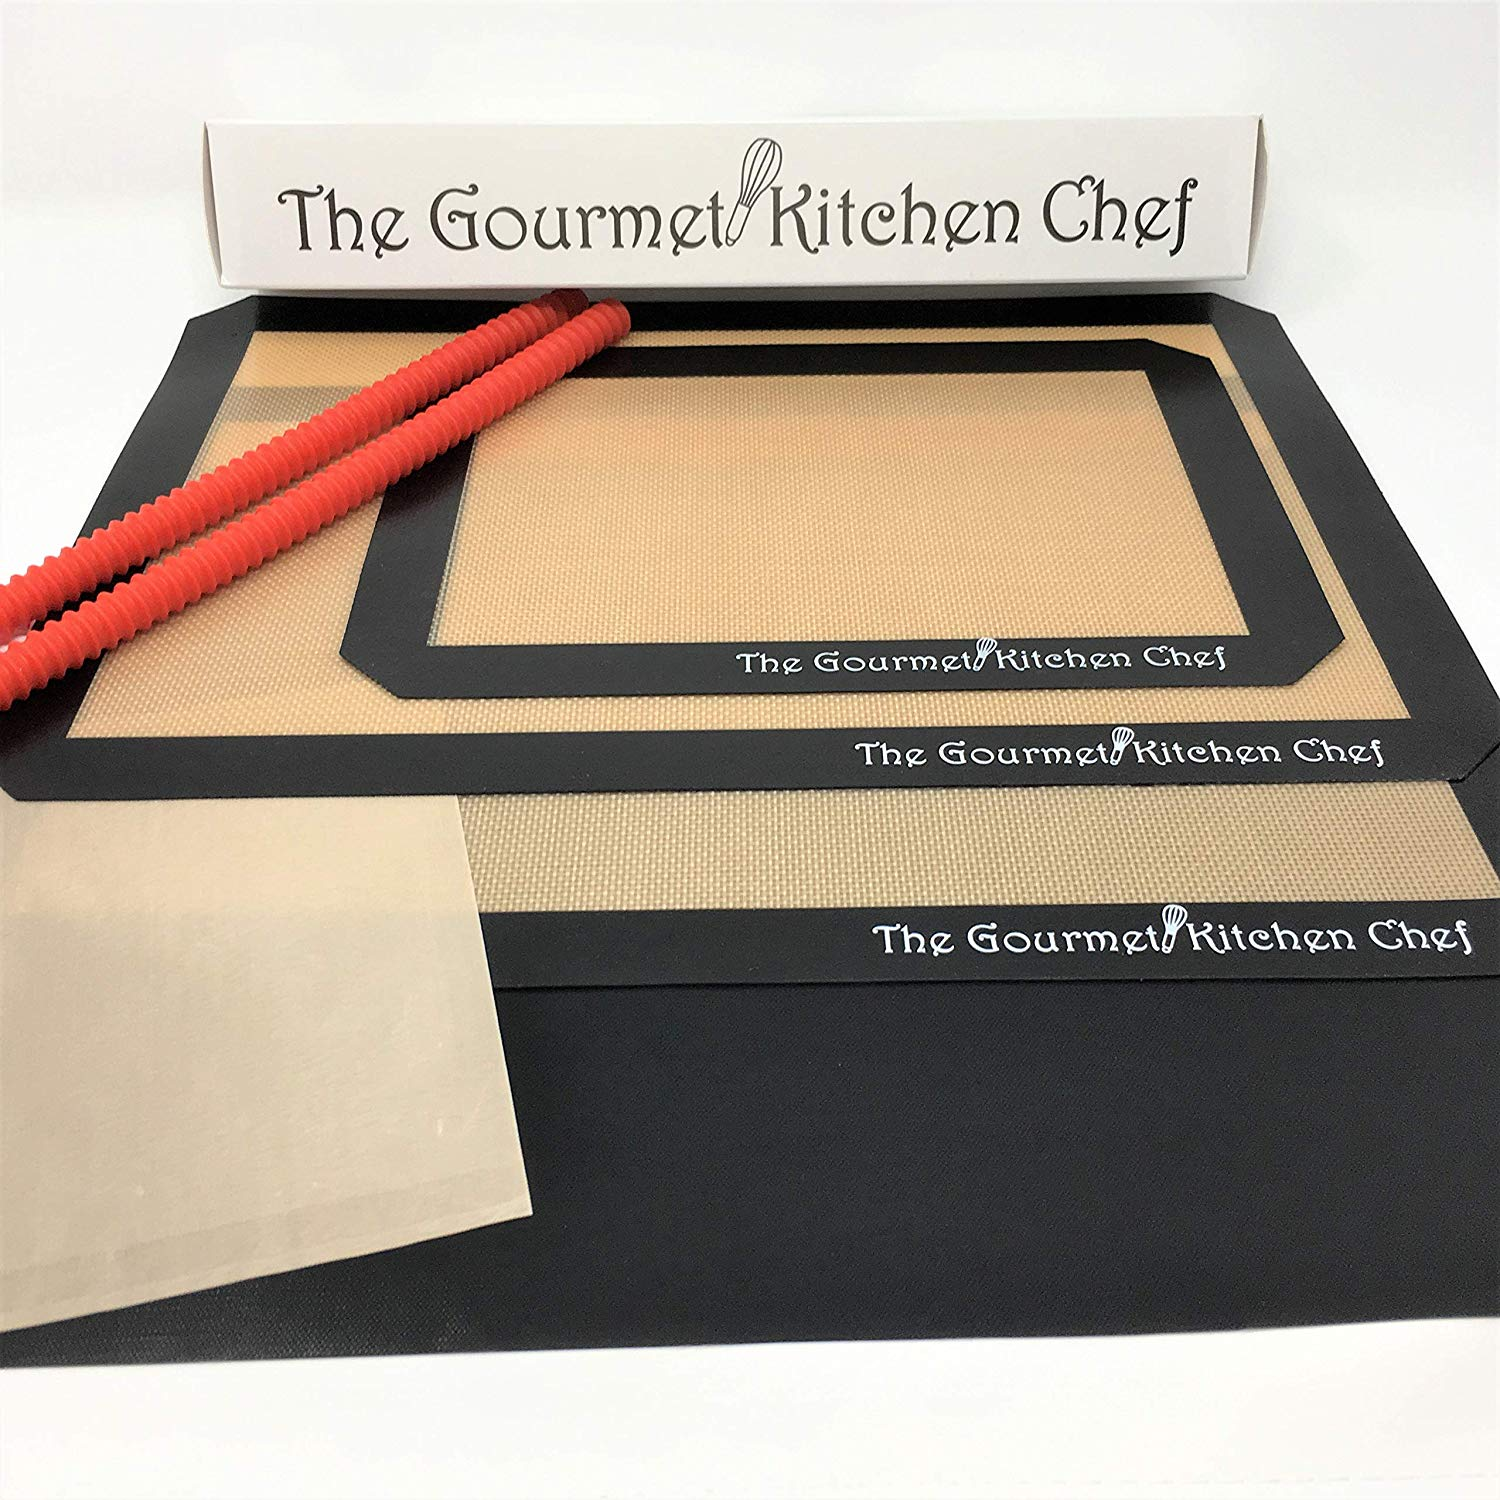 2 Thick Non-Stick Heat Resistant Half Sheet Silicone Baking Mats - 1 Thick Non-Stick Quarter Sheet Silicone Baking Mat - 1 Premium Oven Liner - 1 Toaster Bag - 2 piece set Silicone Oven Rack Guards